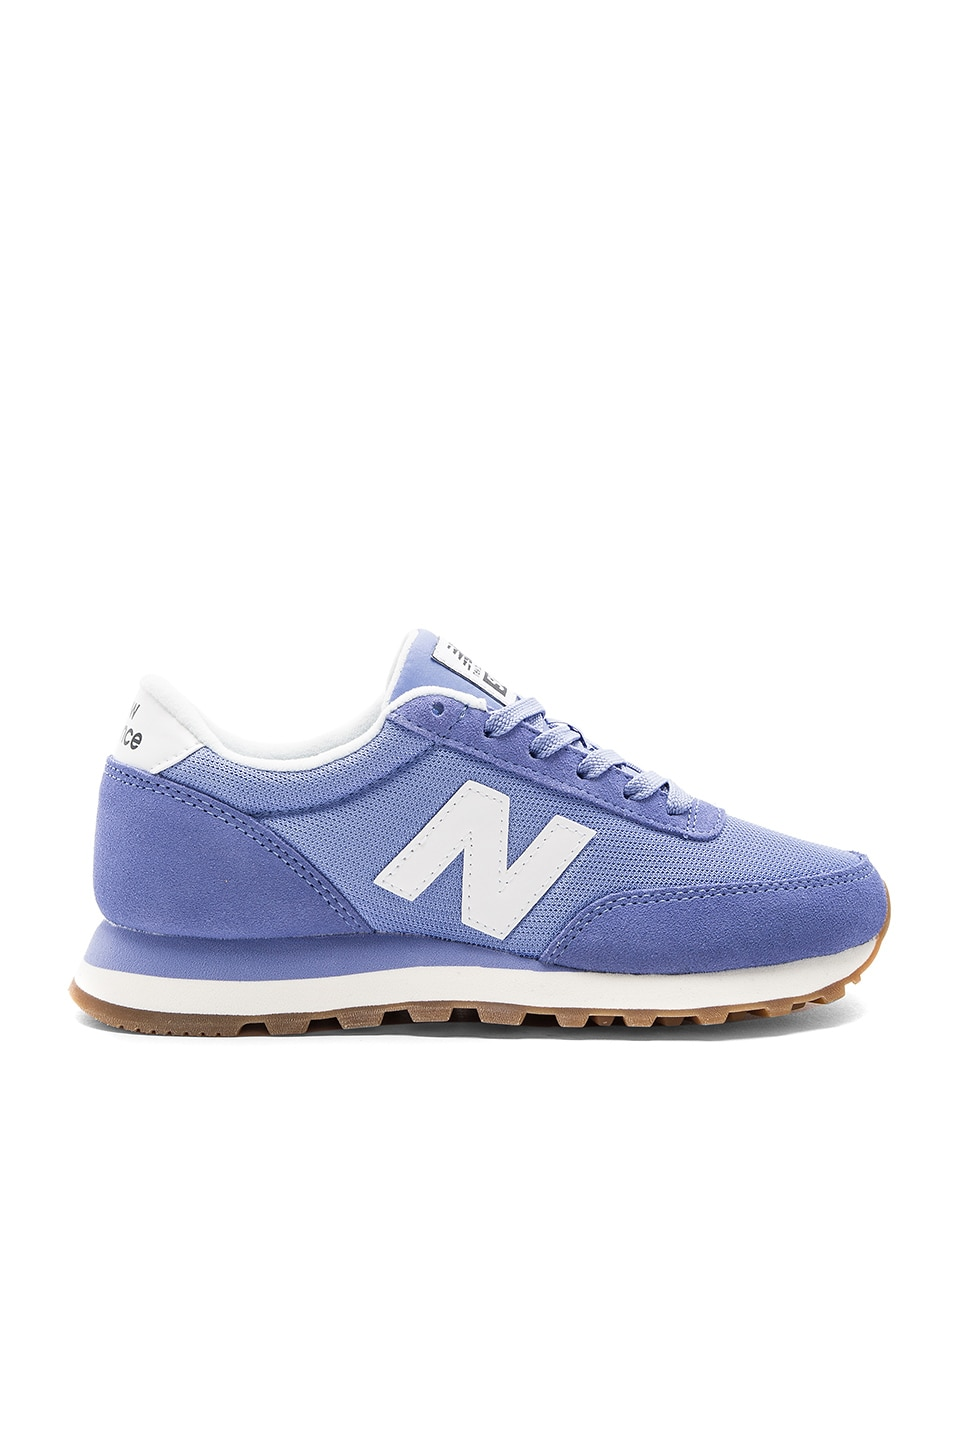 New Balance 501 Sneaker in Gem